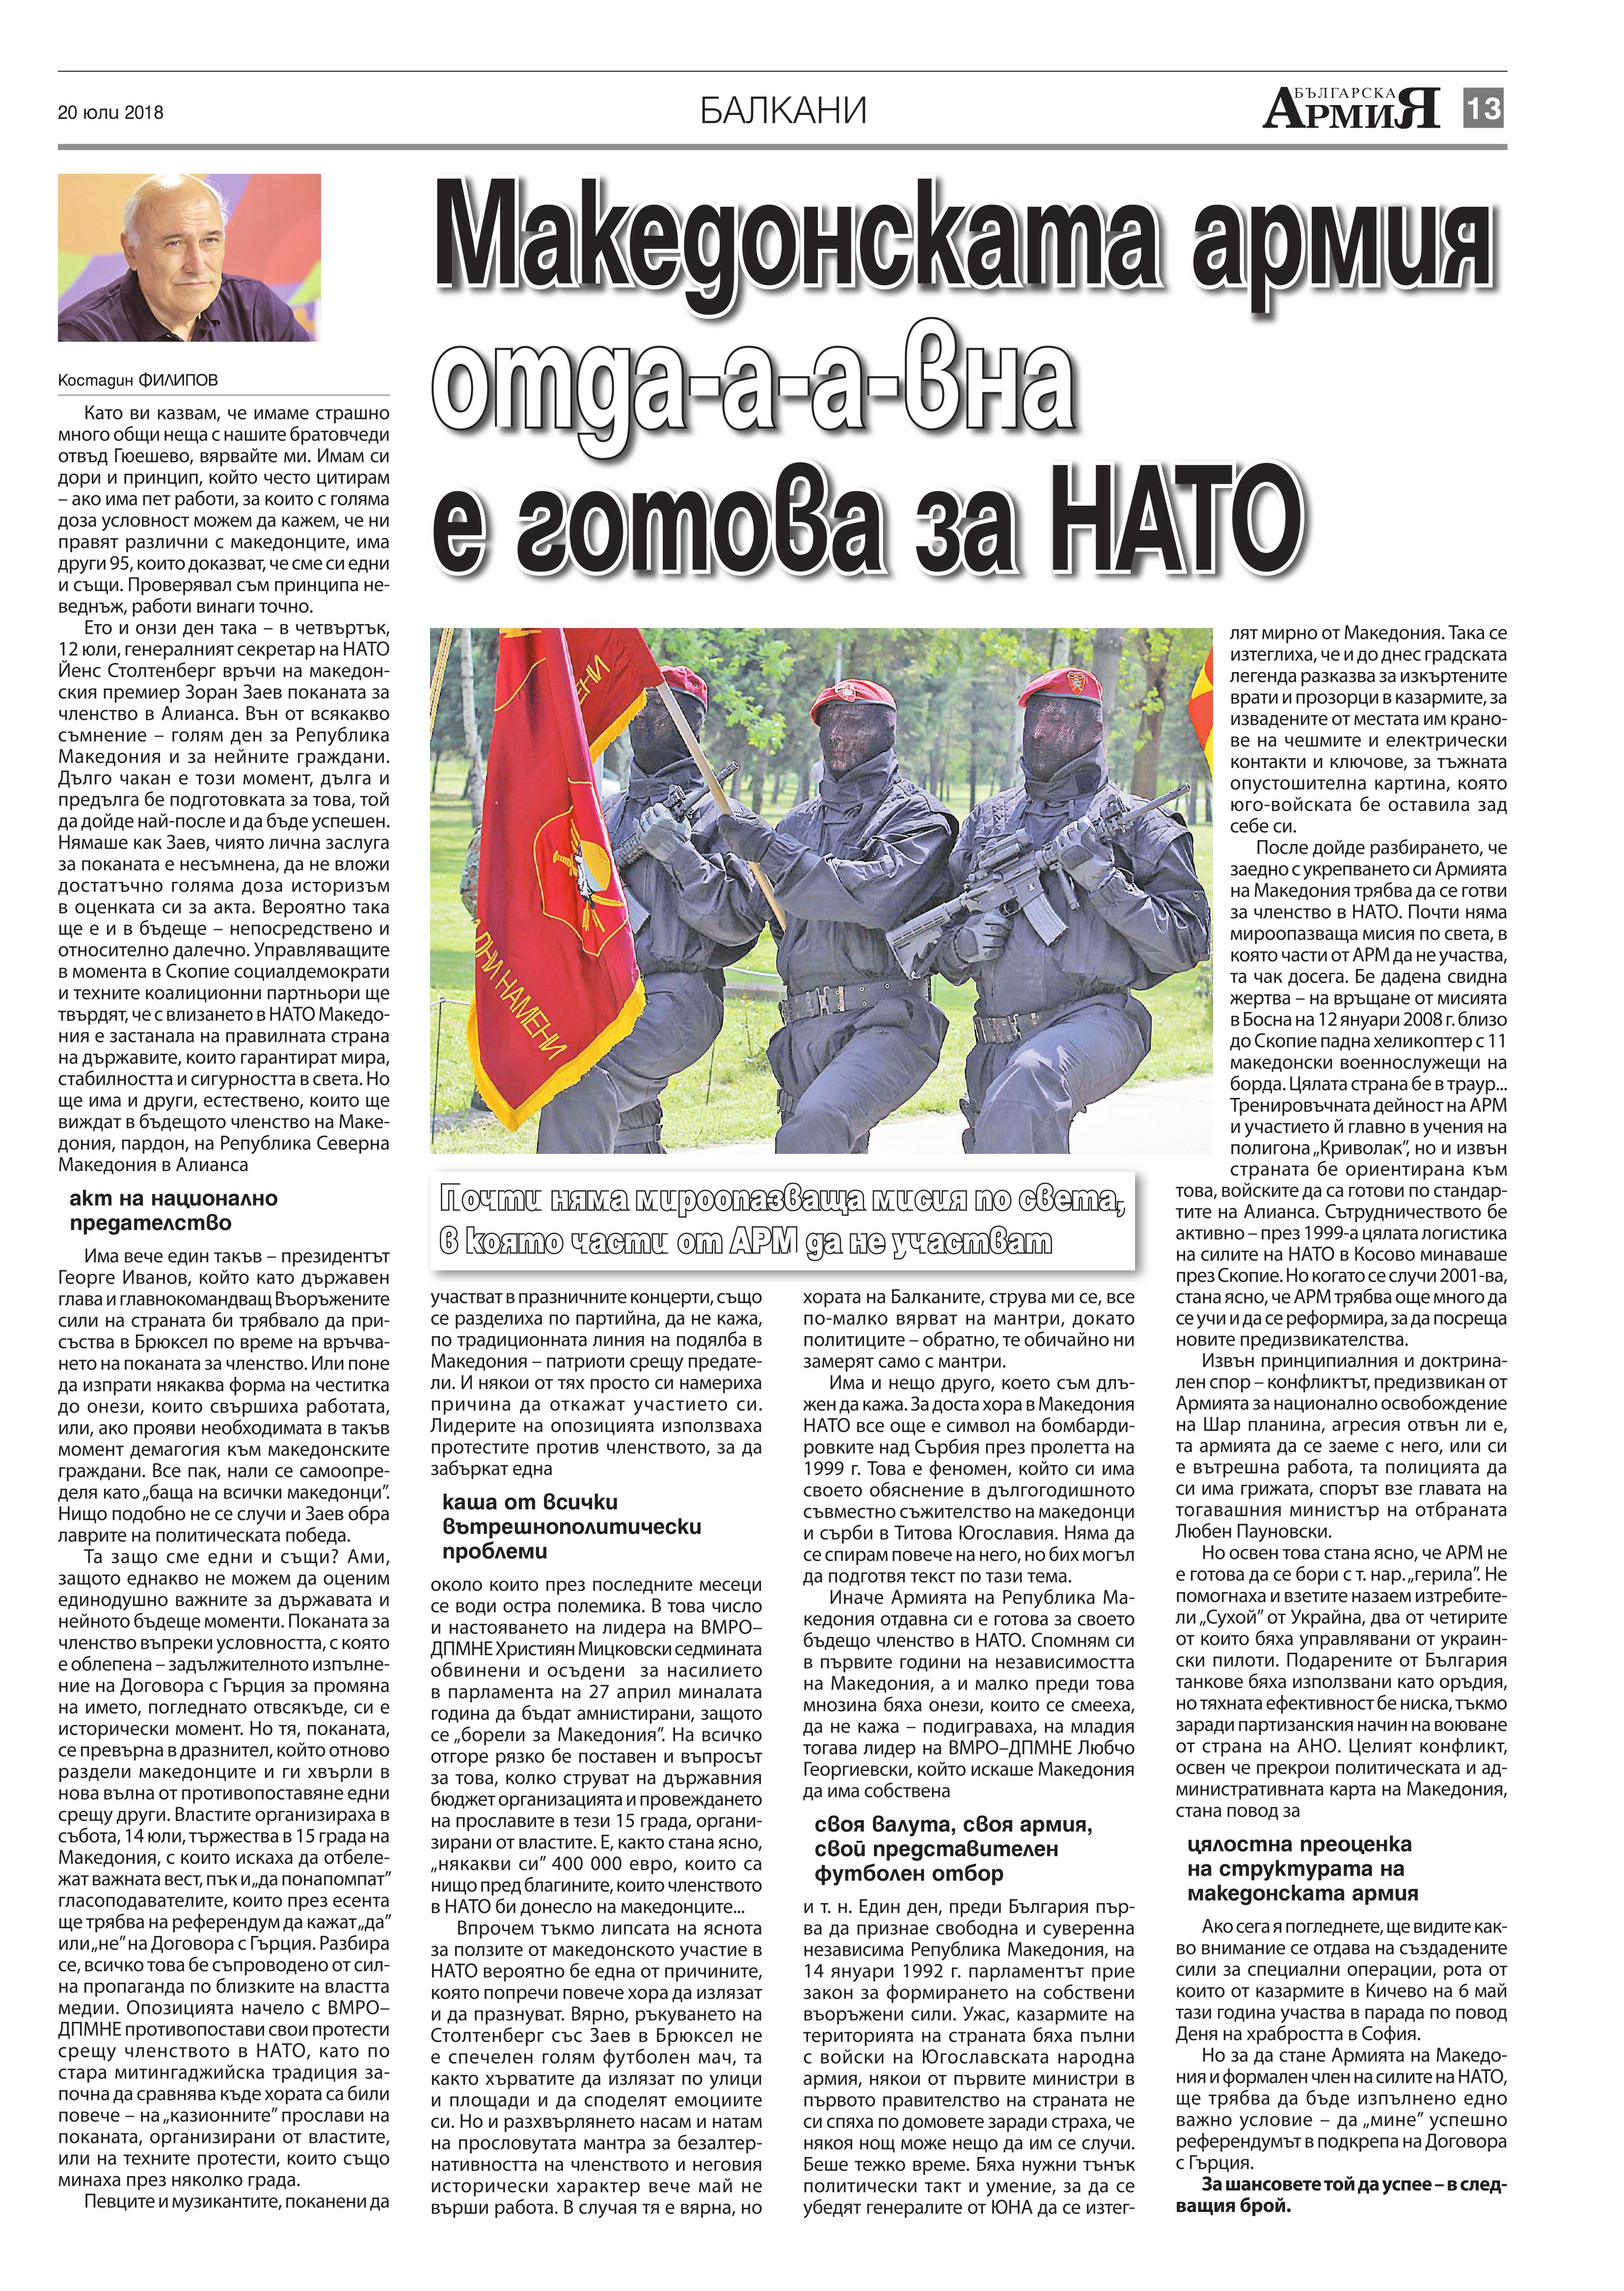 http://armymedia.bg/wp-content/uploads/2015/06/13.page1_-59.jpg